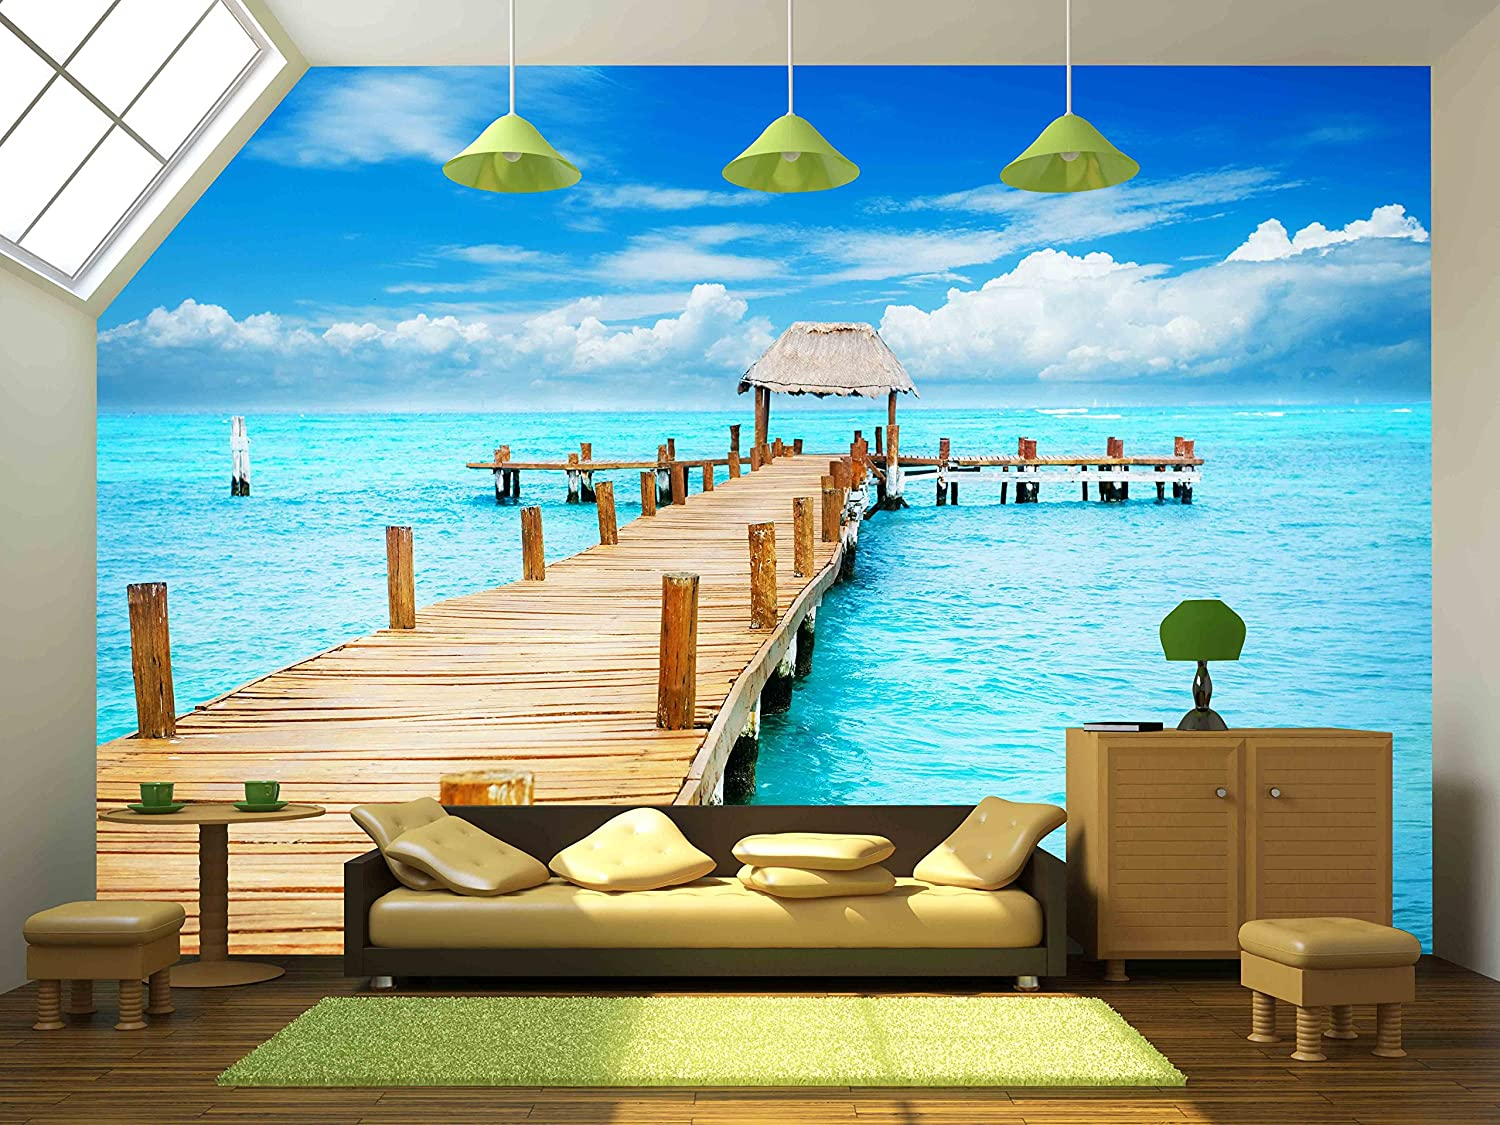 jetty wallpaper removable - photo #10